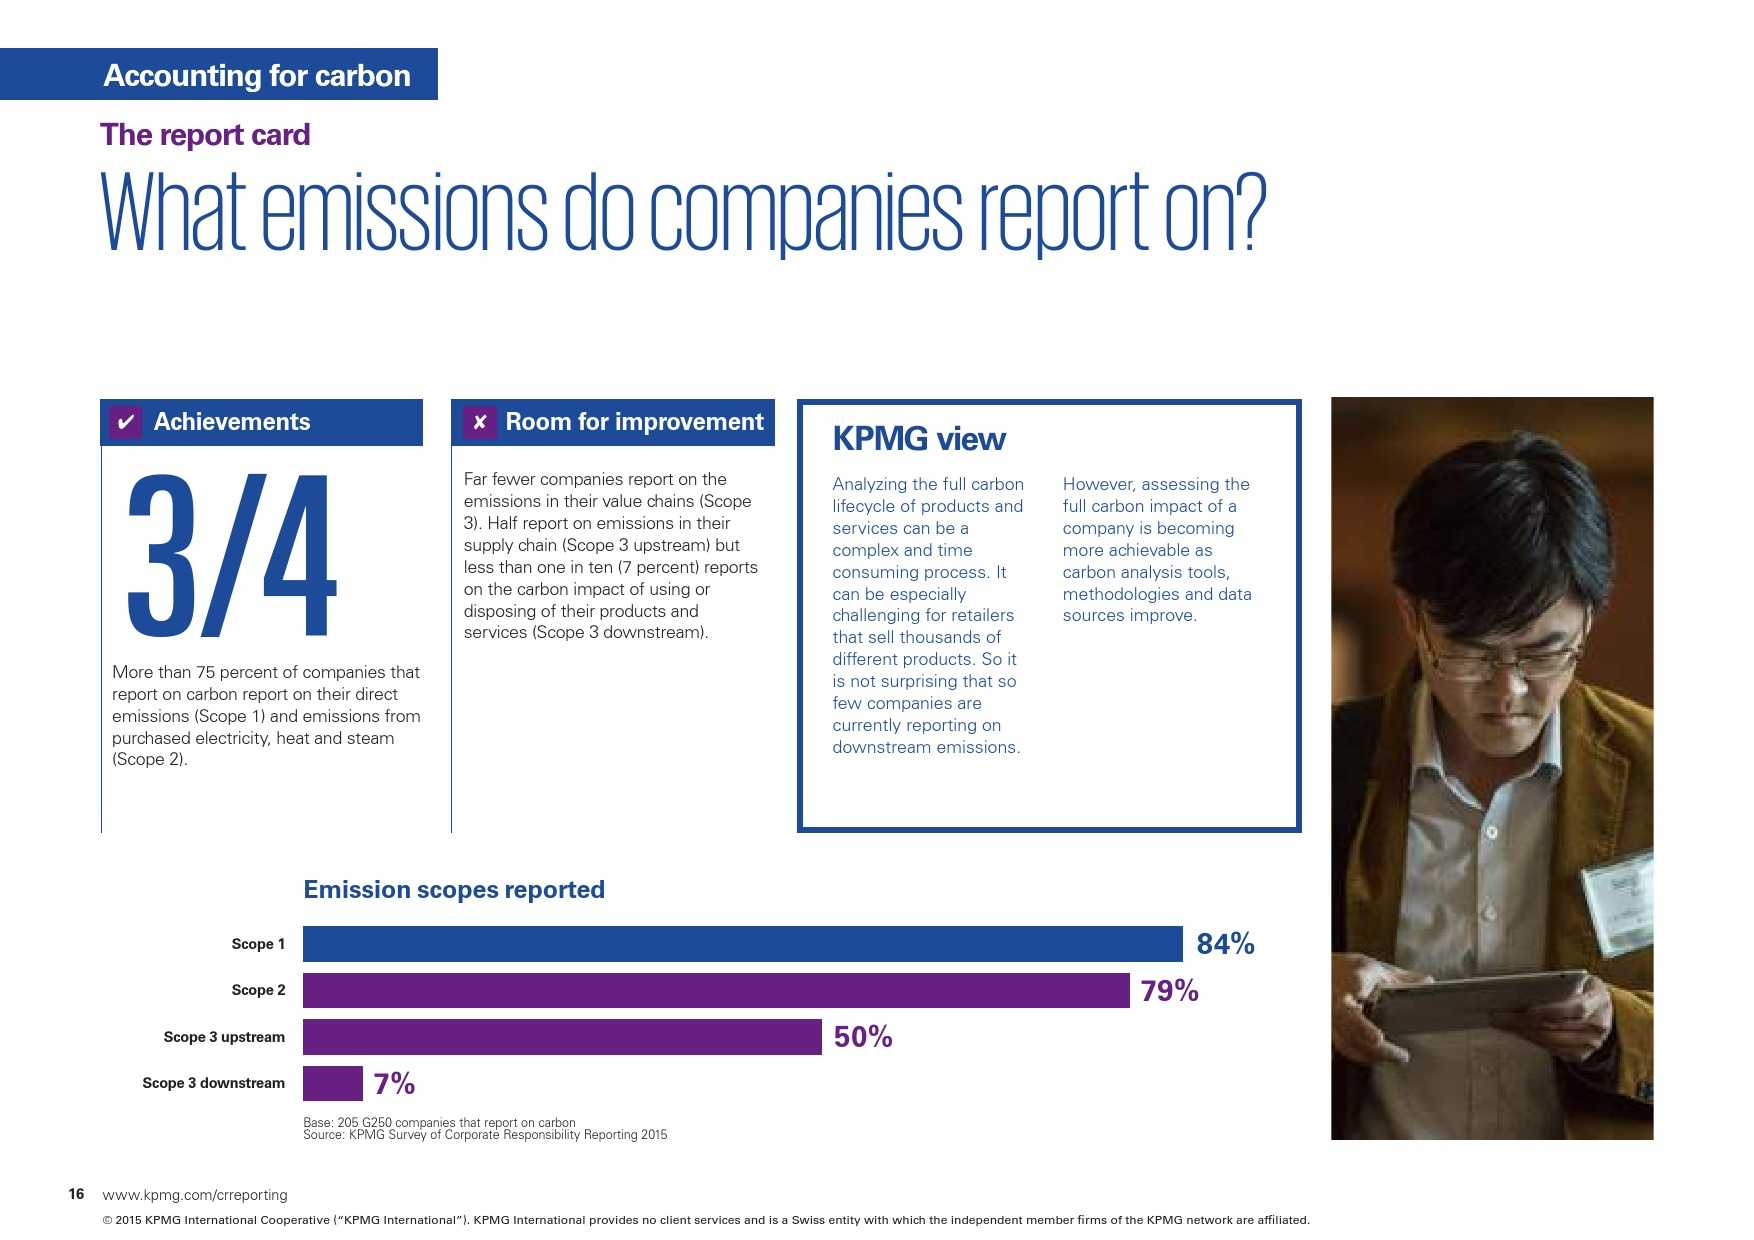 kpmg-international-survey-of-corporate-responsibility-reporting-2015_000016